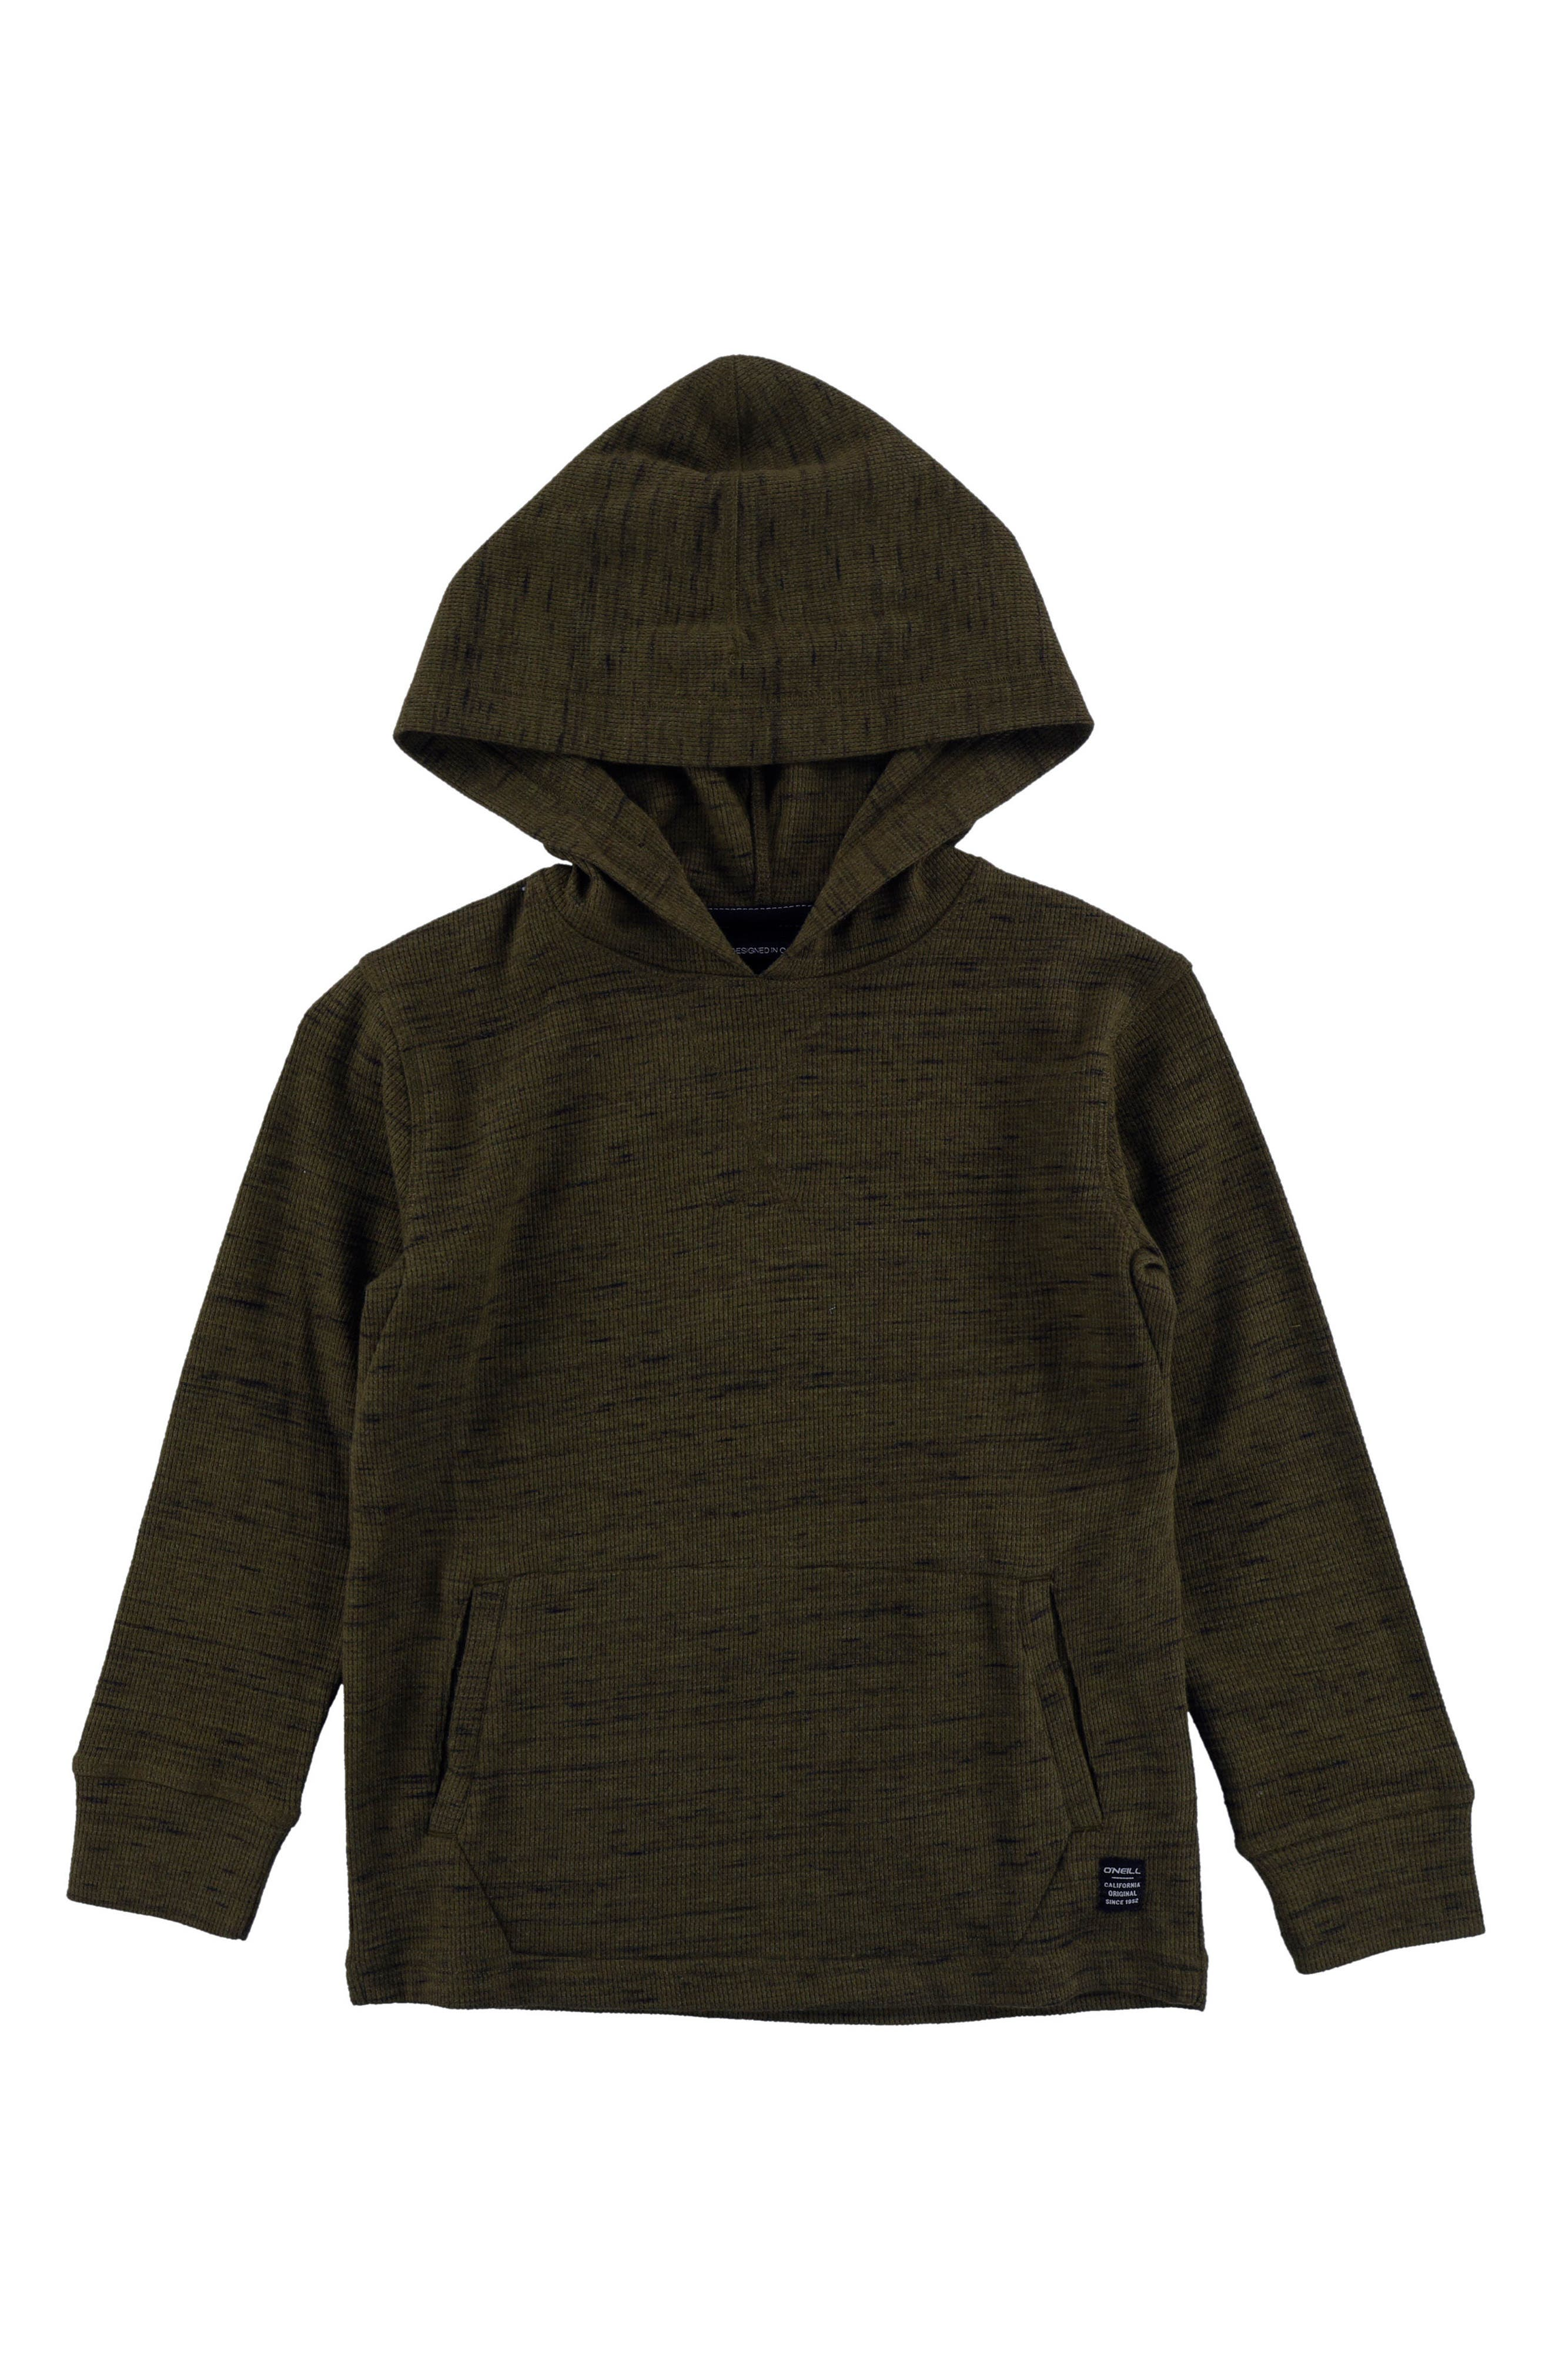 Boldin Thermal Pullover Hoodie,                             Alternate thumbnail 4, color,